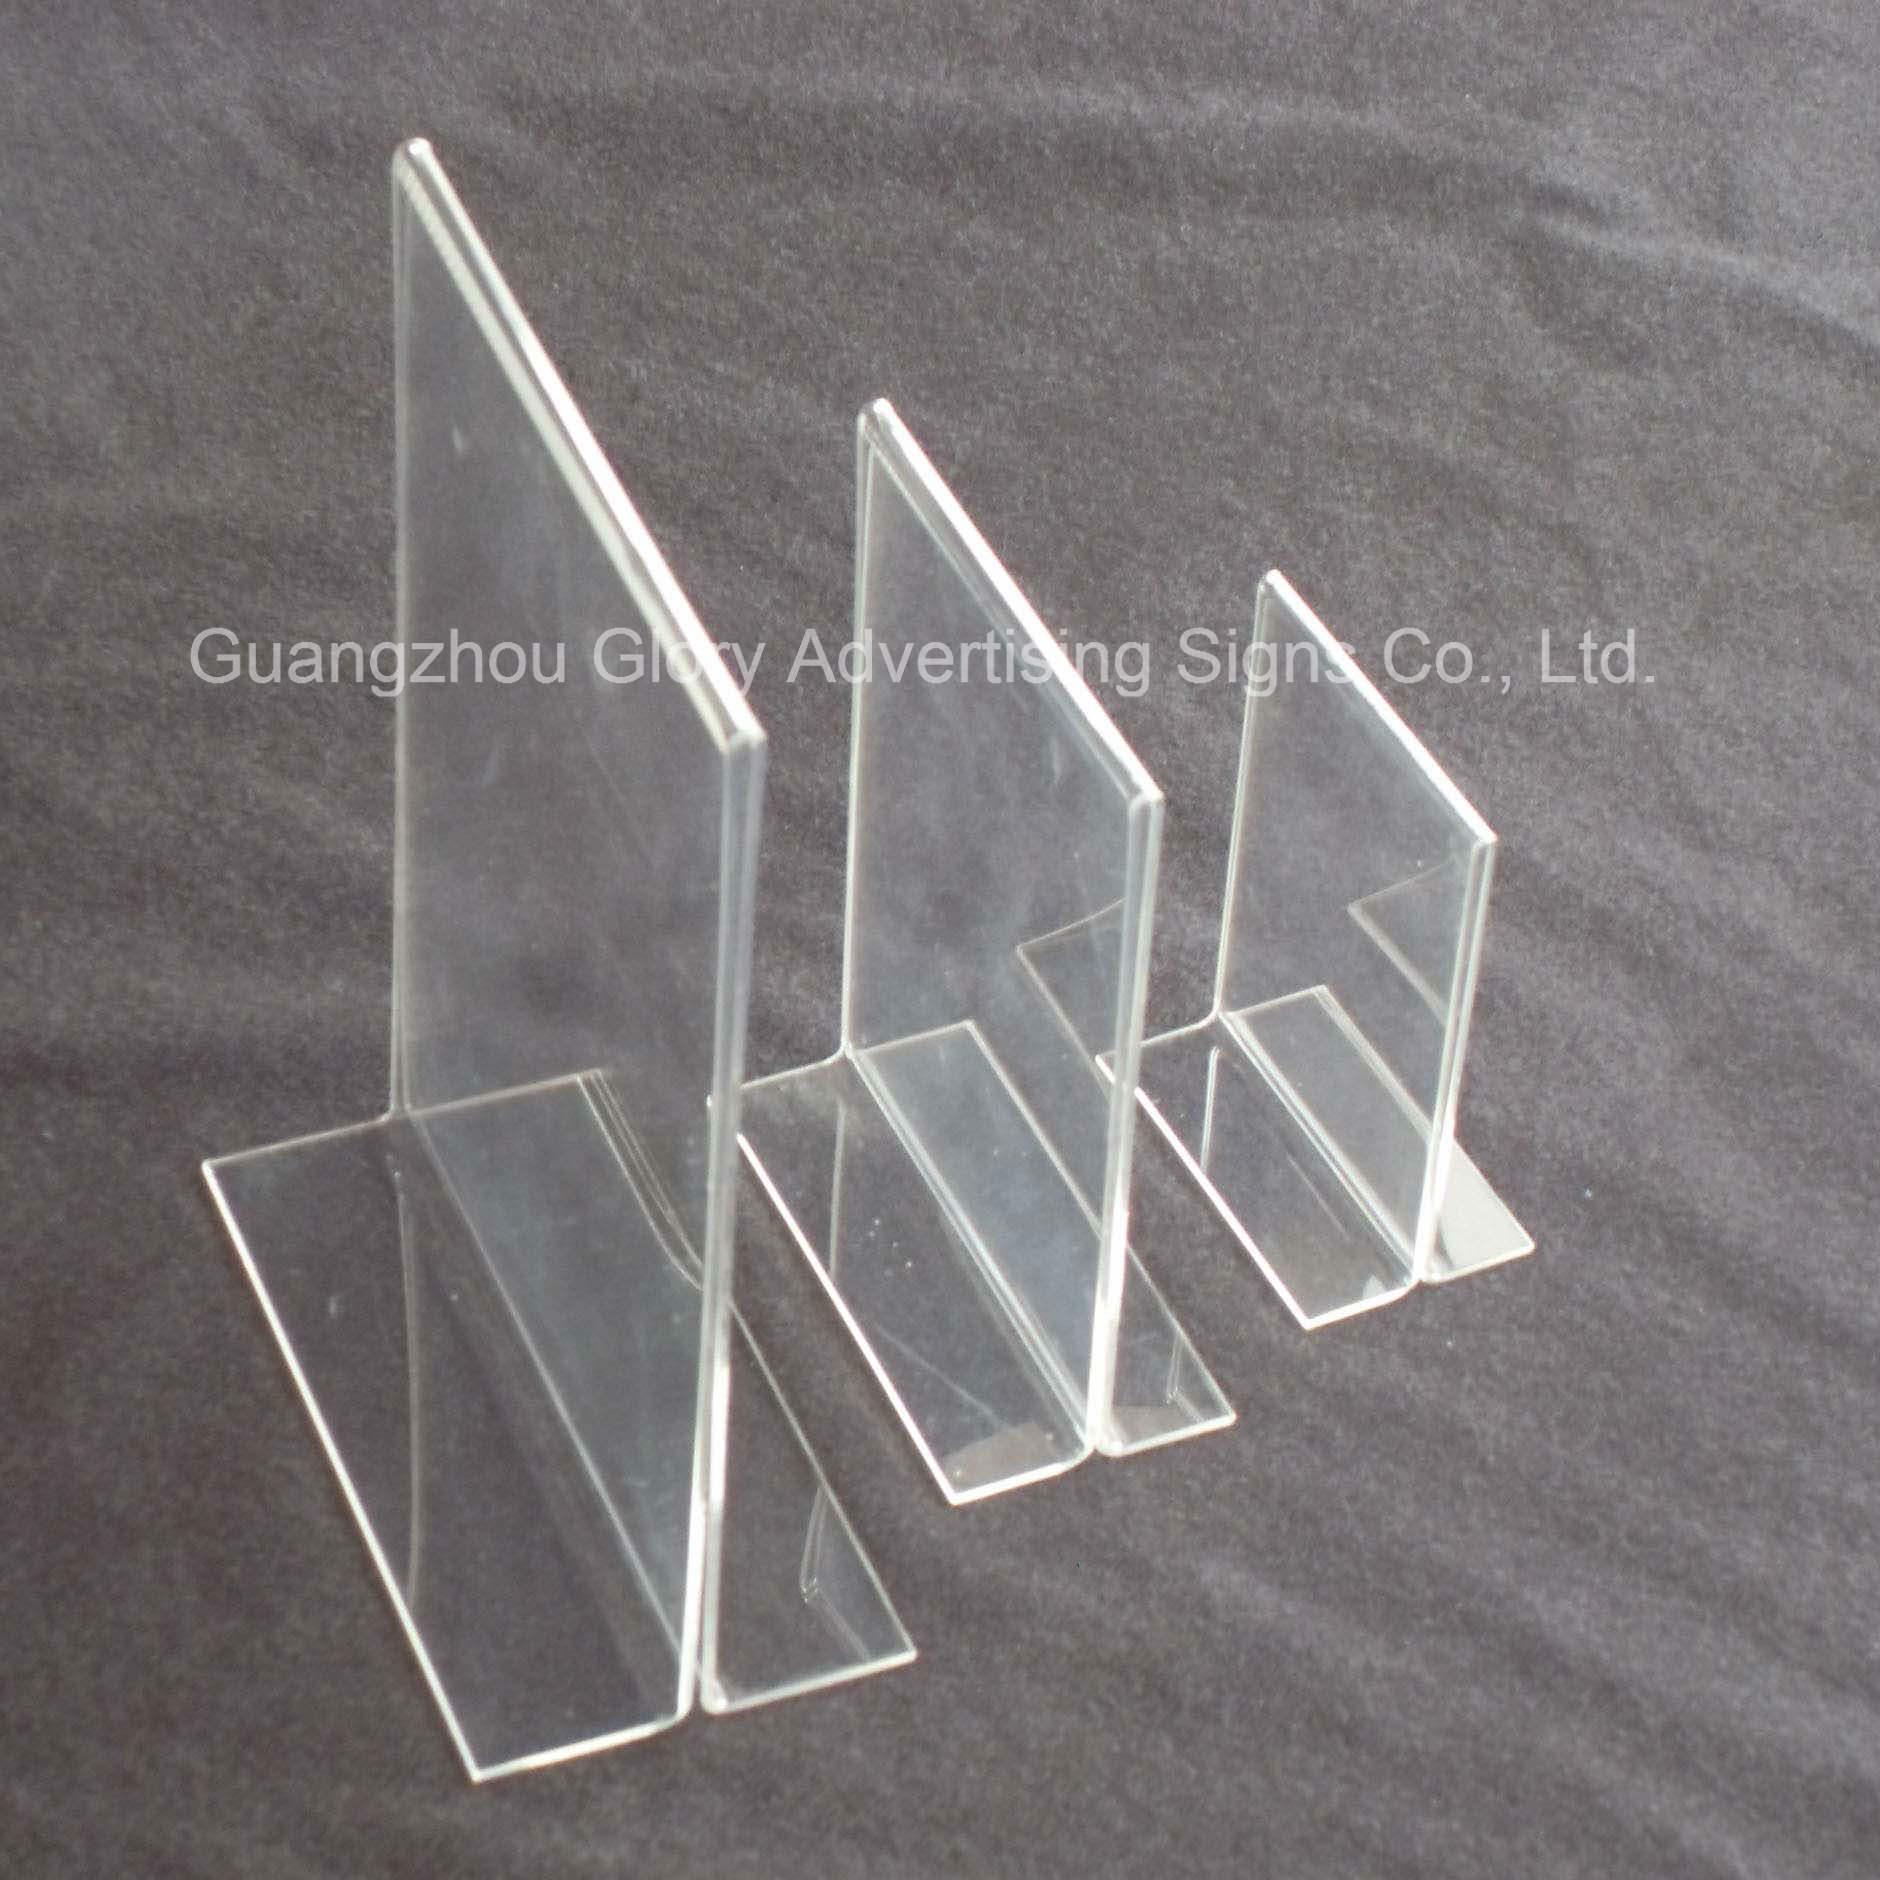 Acrylic Stand /Acrylic Holder/Acrylic Cosmetic Display Stand